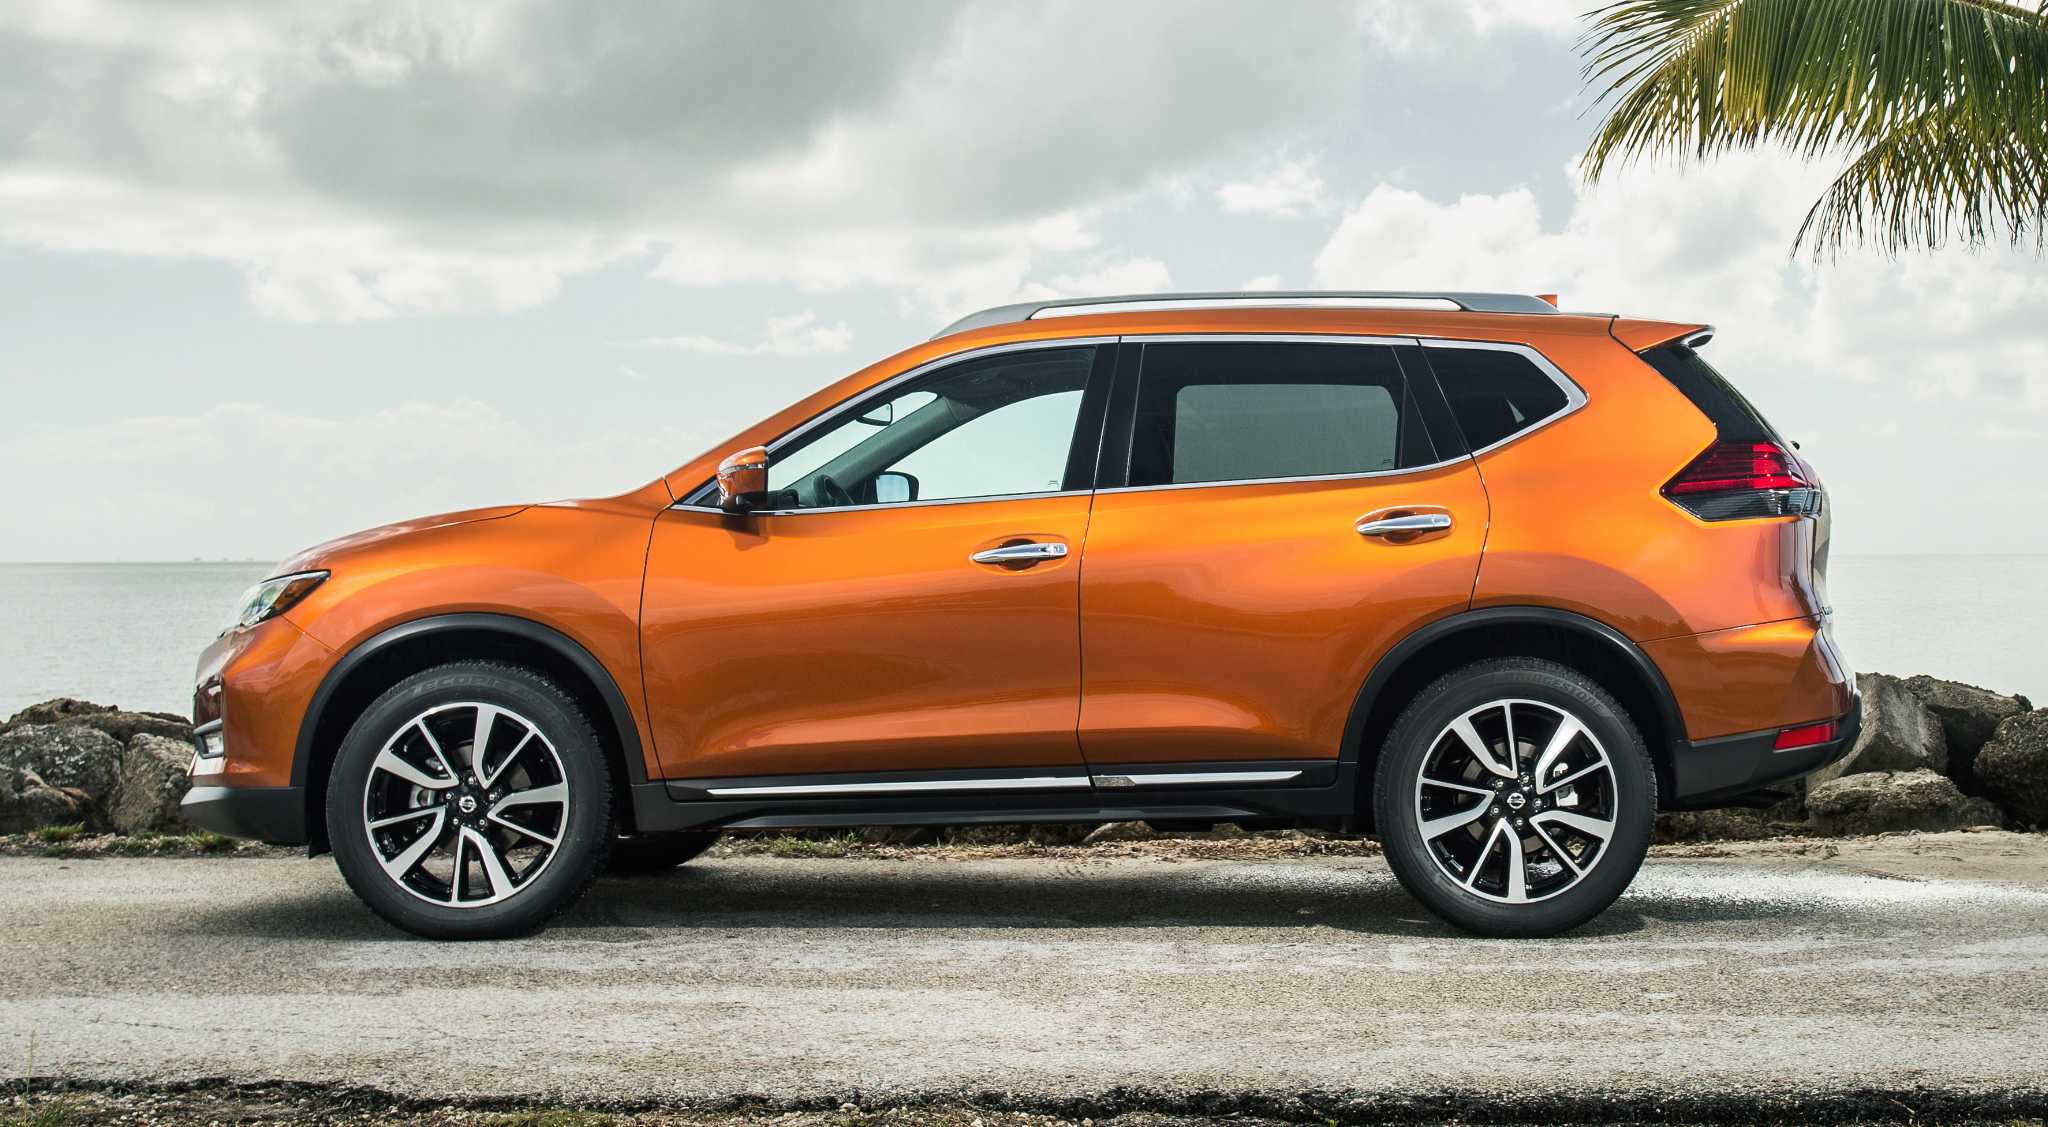 Going Rogue Nissan rolls out ProPilot Assist technology on its star CUV